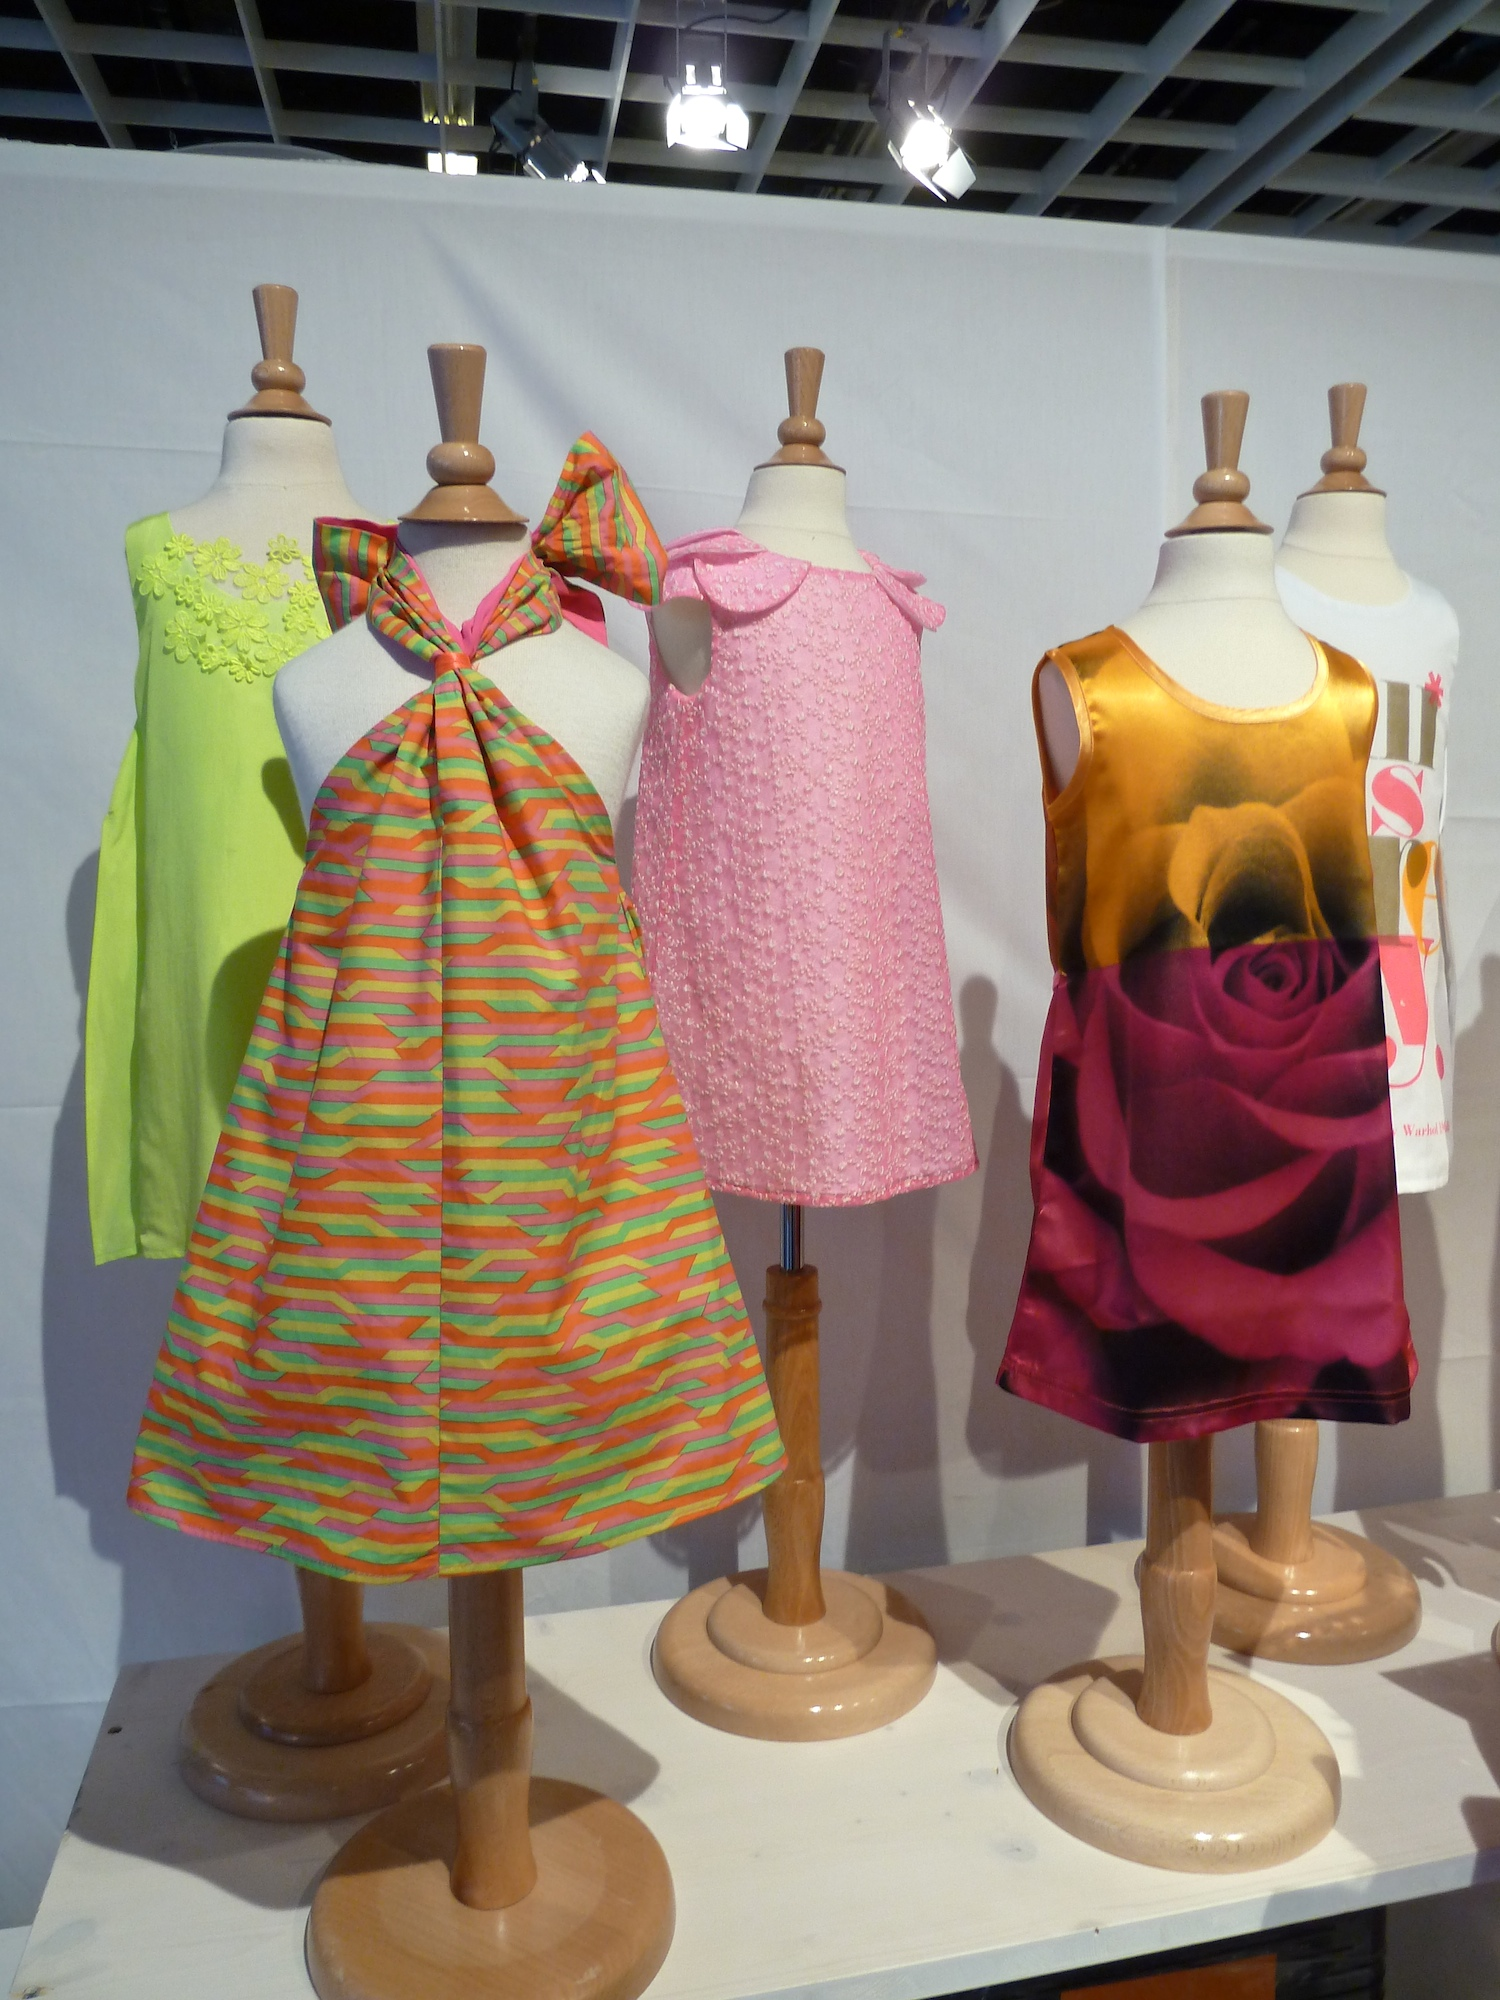 Wonderful zinging colour from the amazing Anne Kurris for kidswear summer 2012 at Pitti Bimbo